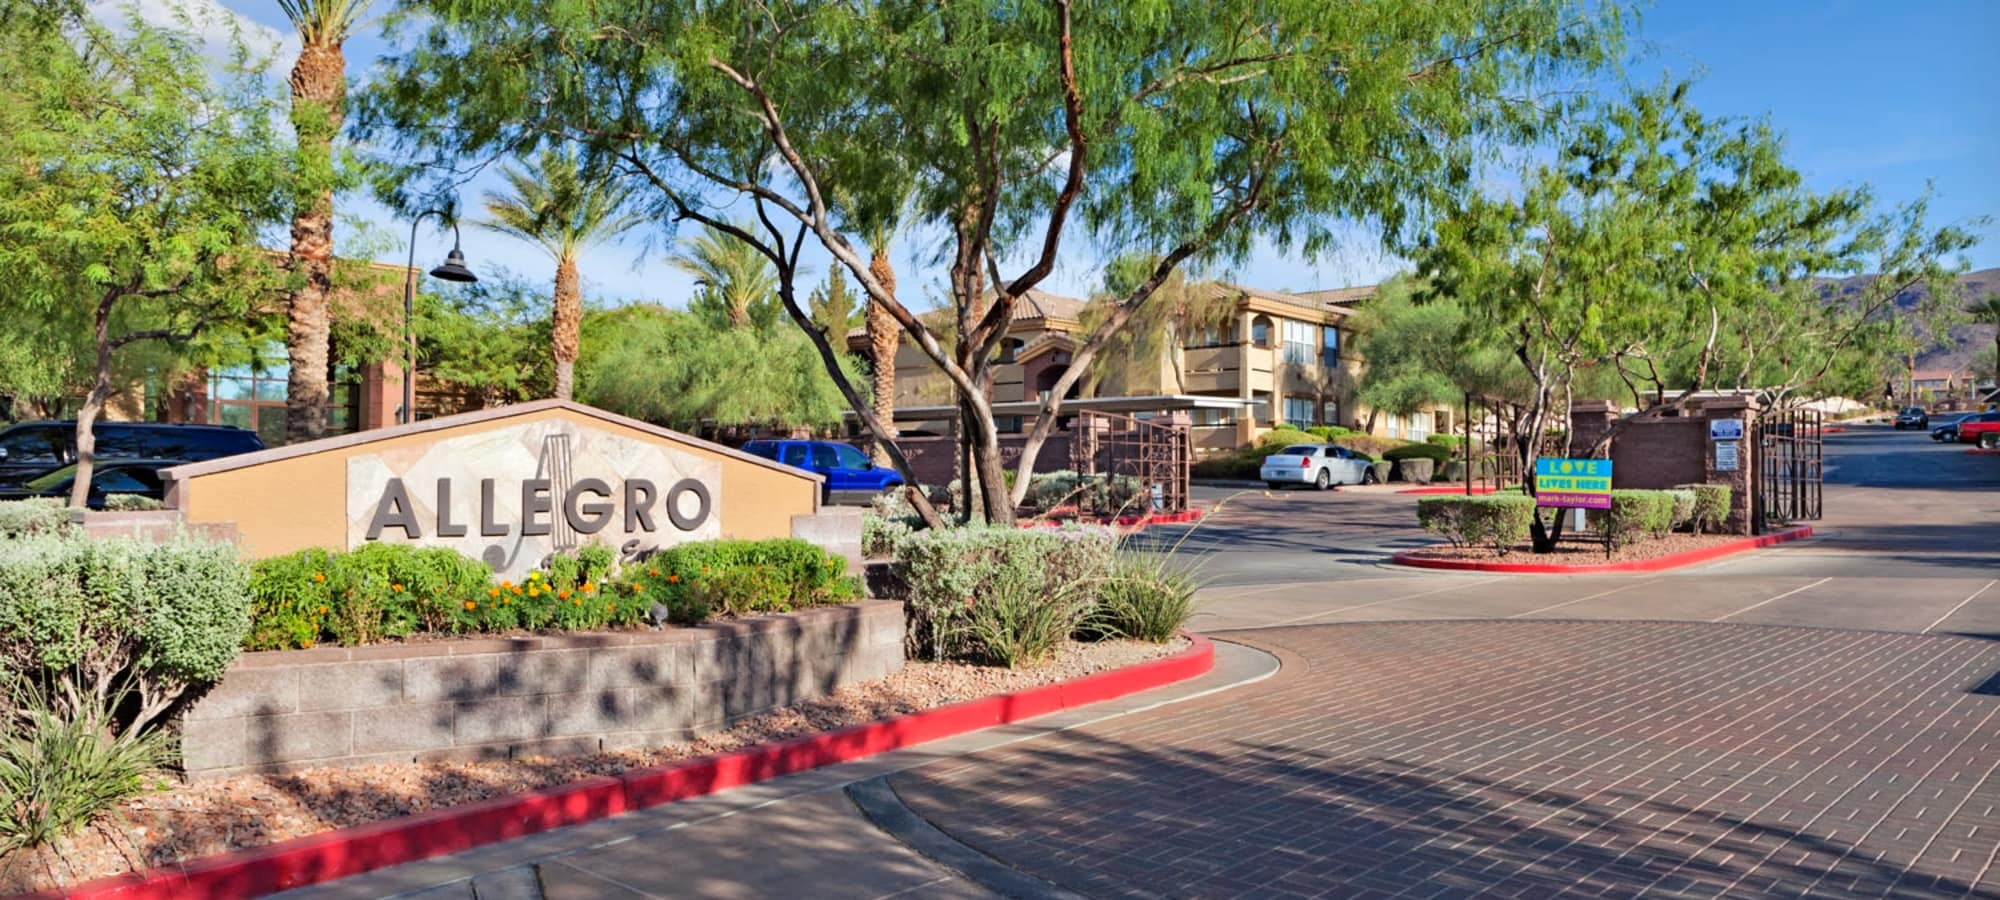 Landscaping around entry sign at Allegro at La Entrada in Henderson, Nevada